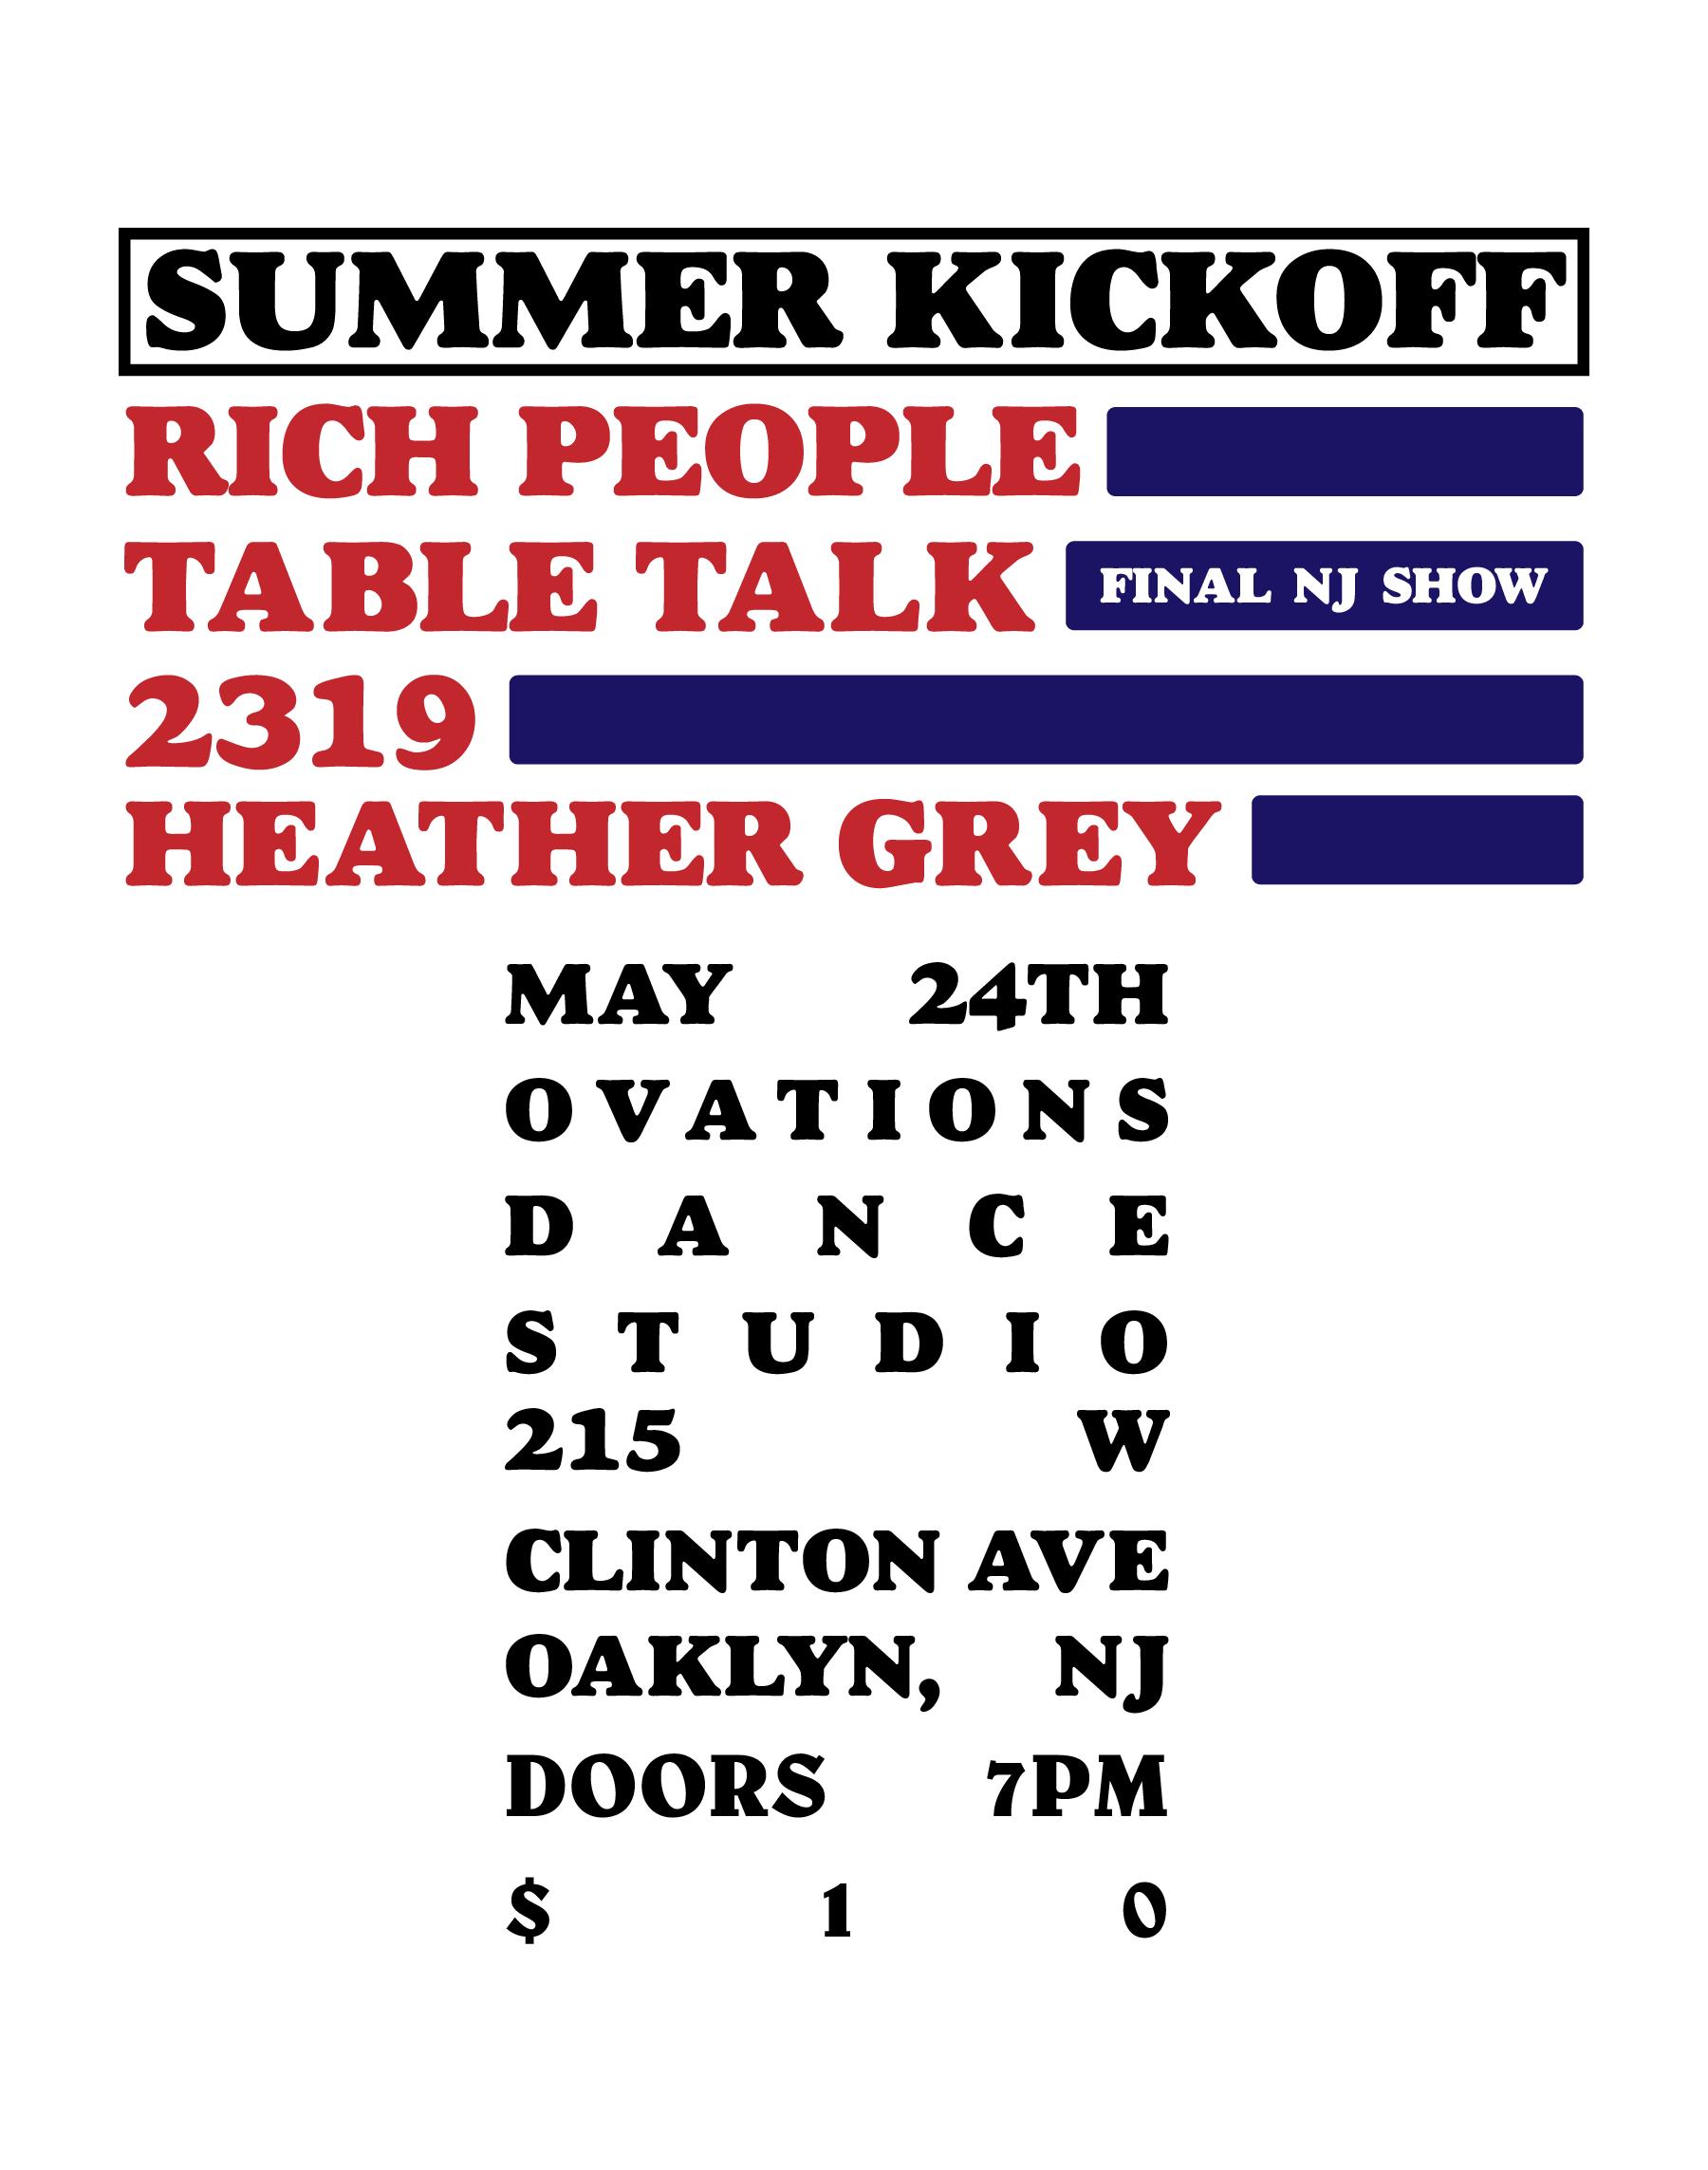 Table Talk Final Jersey Flyer.png